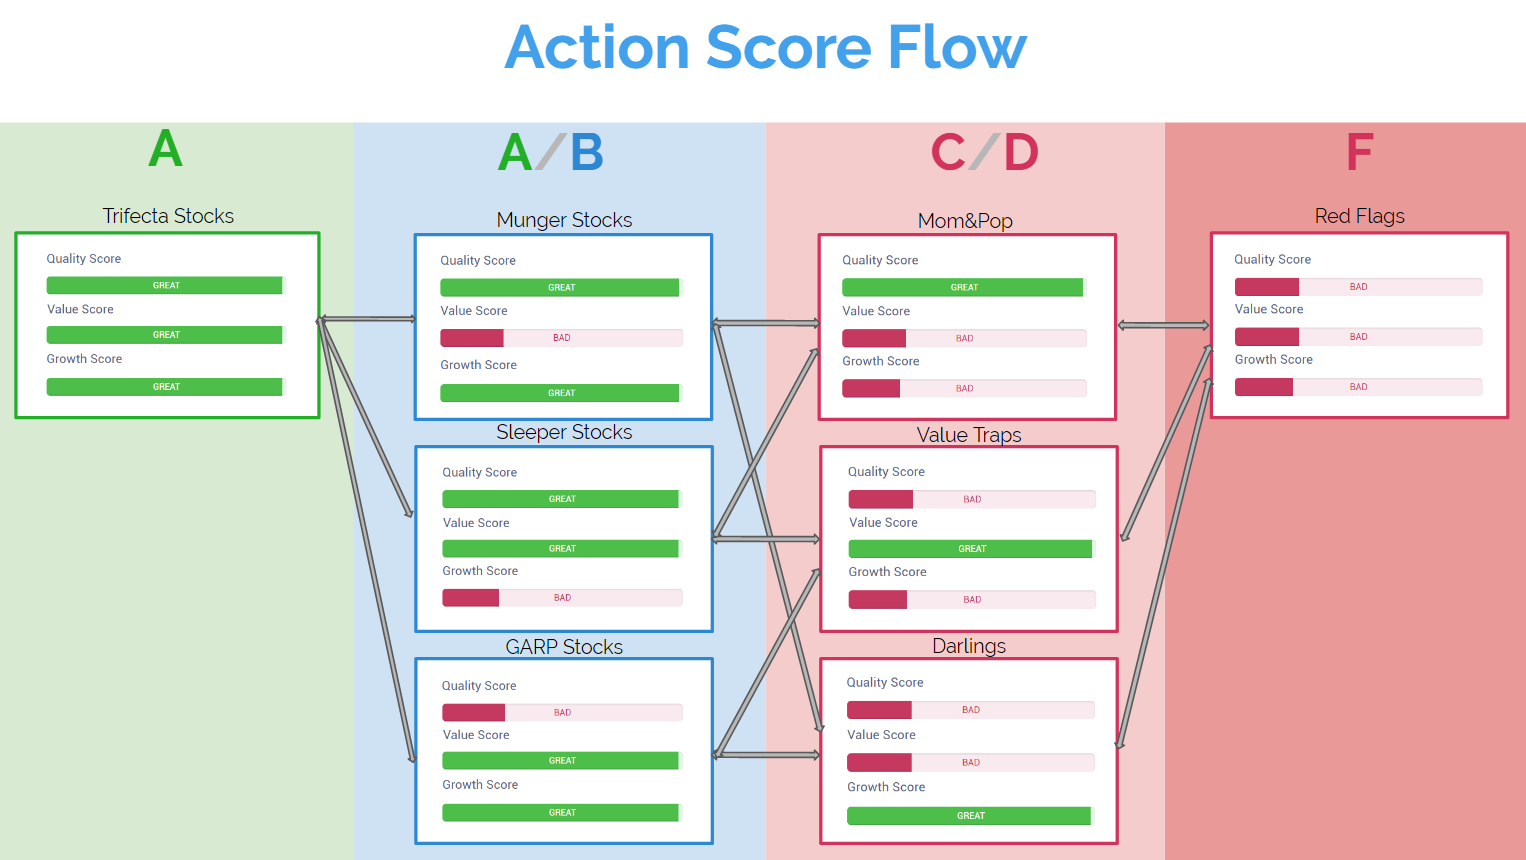 How Action Score Flows